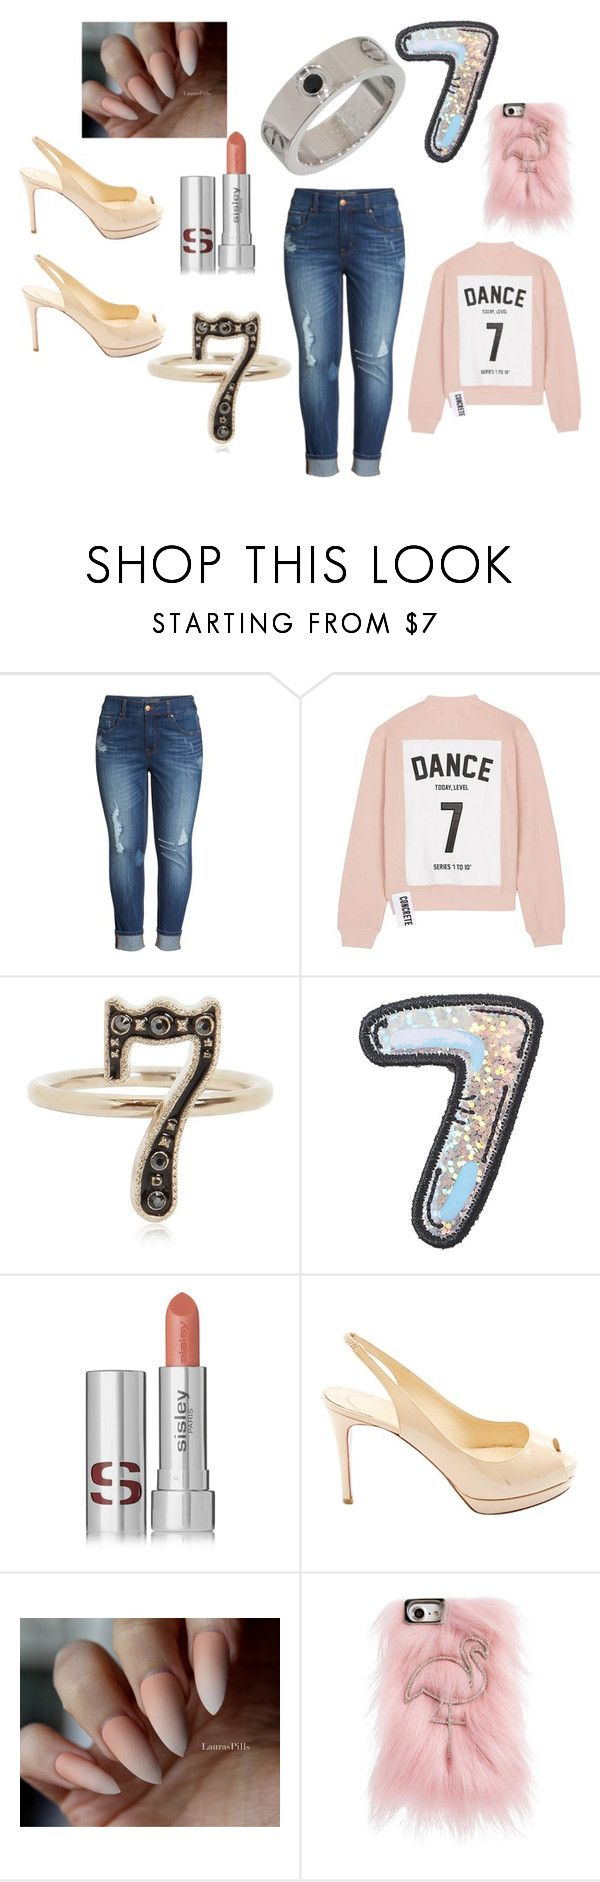 """""""Number 7"""" by freckles-the-dork ❤ liked on Polyvore featuring Melissa McCarthy Seven7, Studio Concrete, Valentino, Stoney Clover Lane, Sisley, Christian Louboutin, Skinnydip, women, plussize and numbers"""